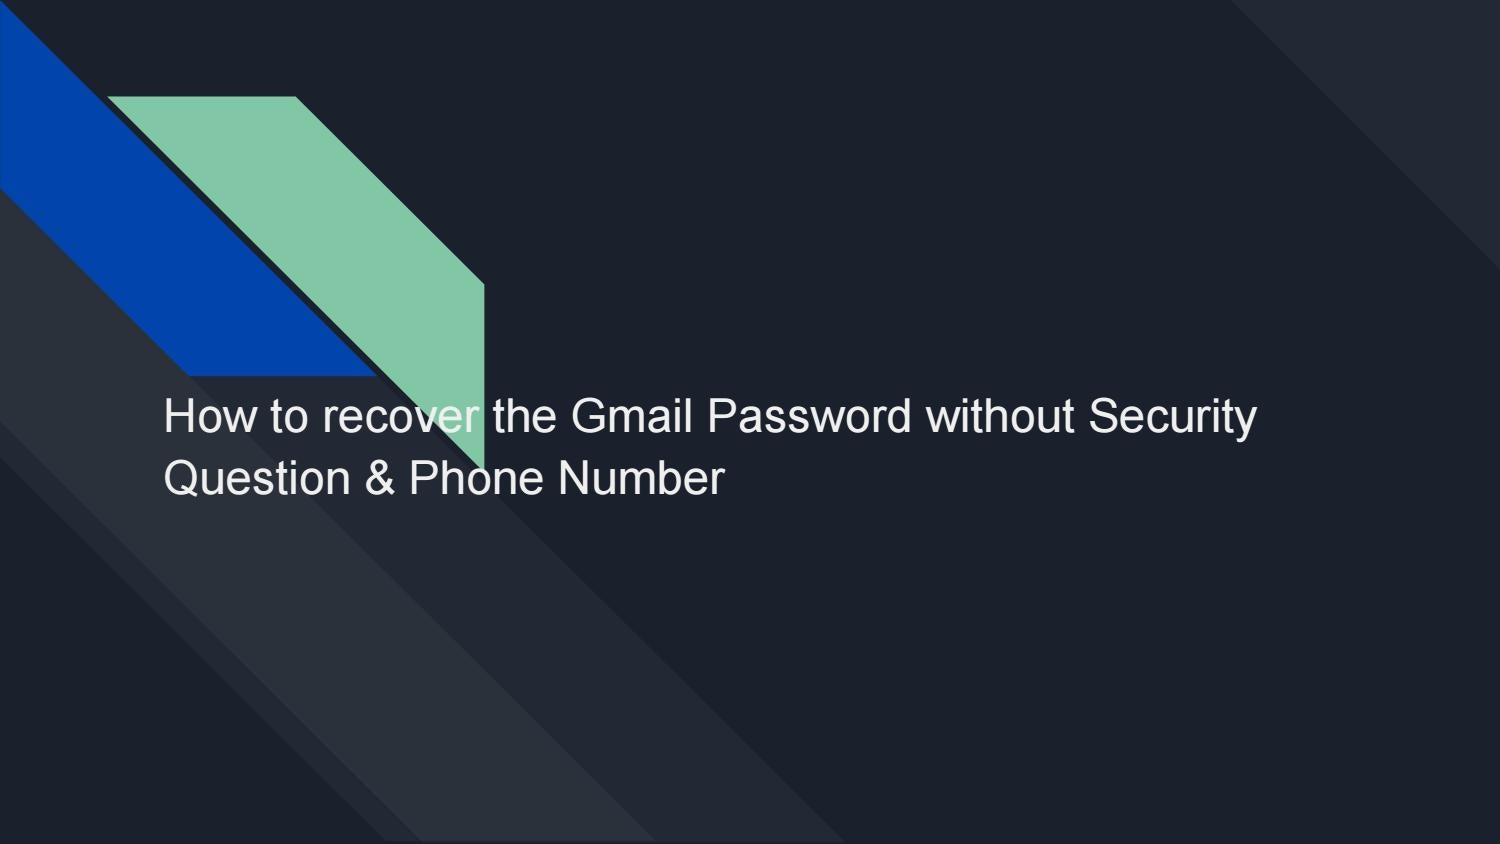 gmail password recovery without security question